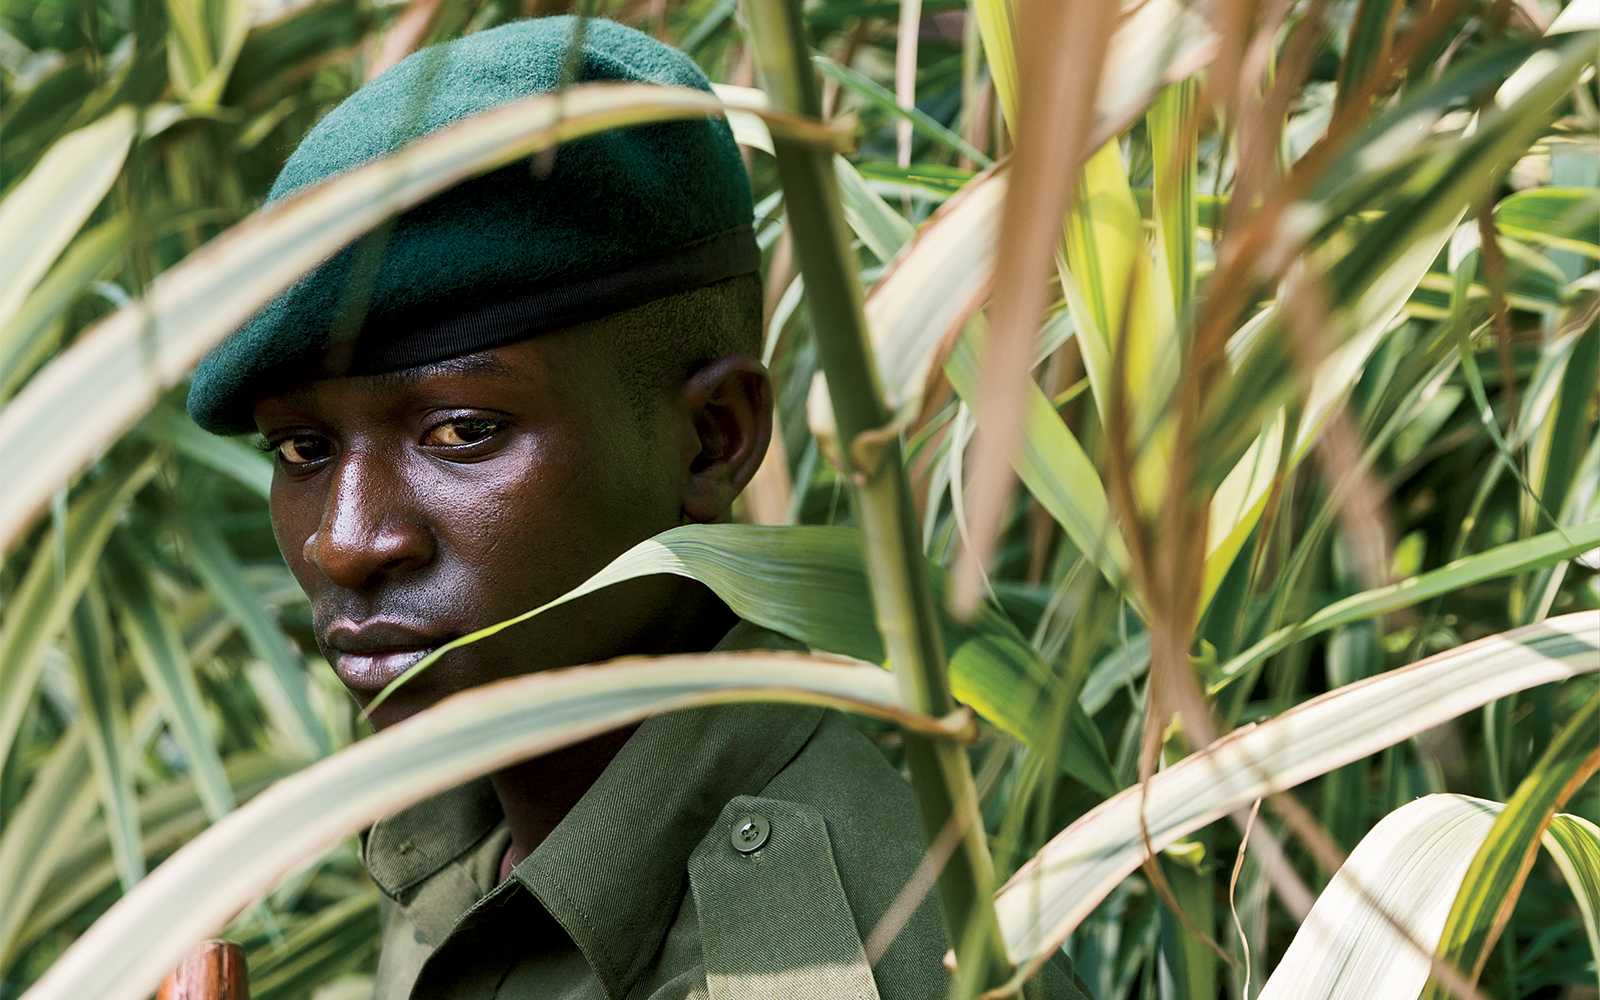 A ranger on patrol in Virunga National Park